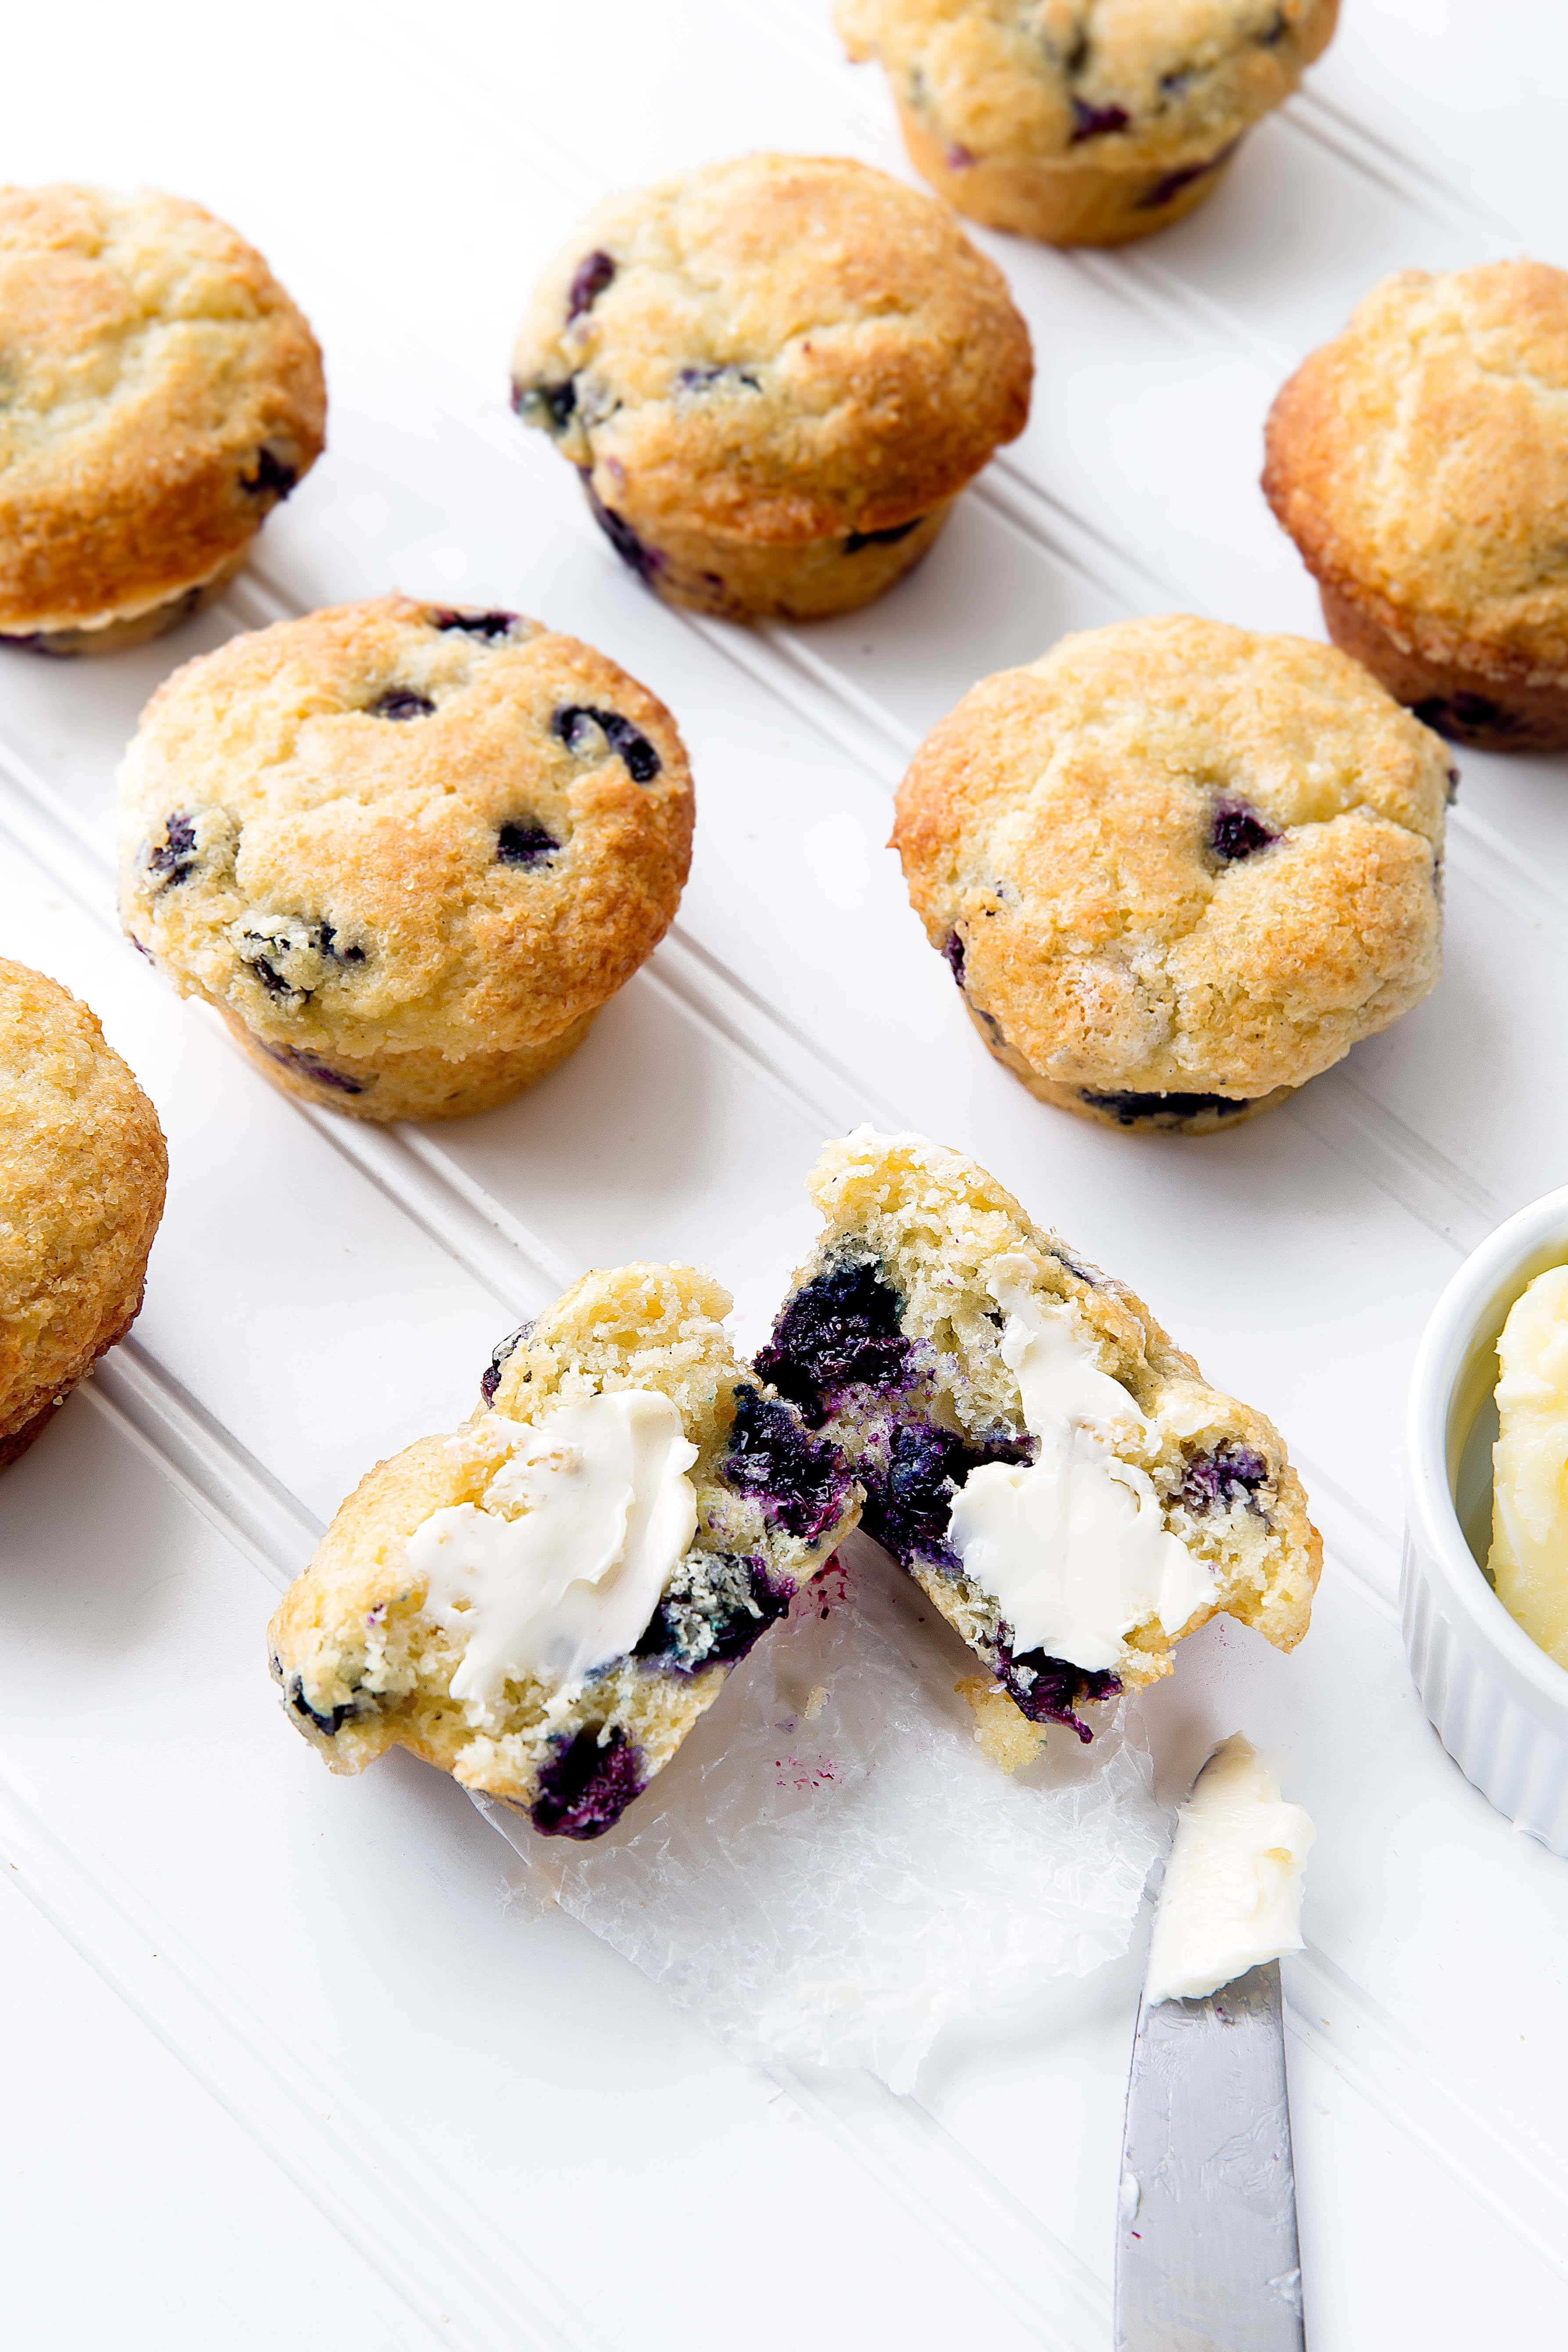 Sky high Bakery Style Blueberry Muffins are soft, fluffy, and loaded with juicy blueberries. One bite and you'll agree that they're the best blueberry muffin you've ever had!